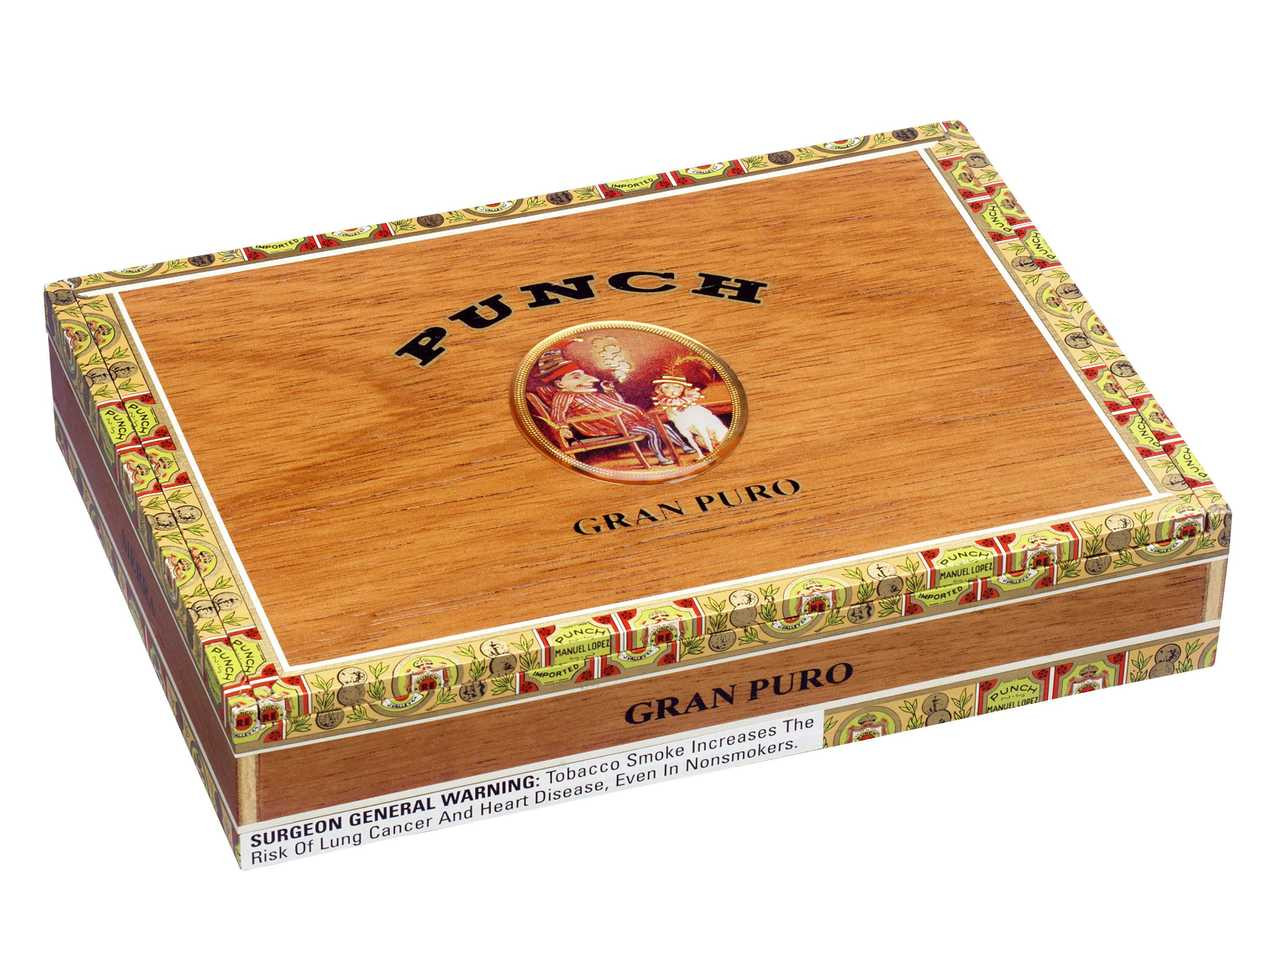 Shop Now Punch Gran Puro Sierra Cigars - Natural Box of 25 --> Singles at $7.64, 5 Packs at $32.99, Boxes at $115.99